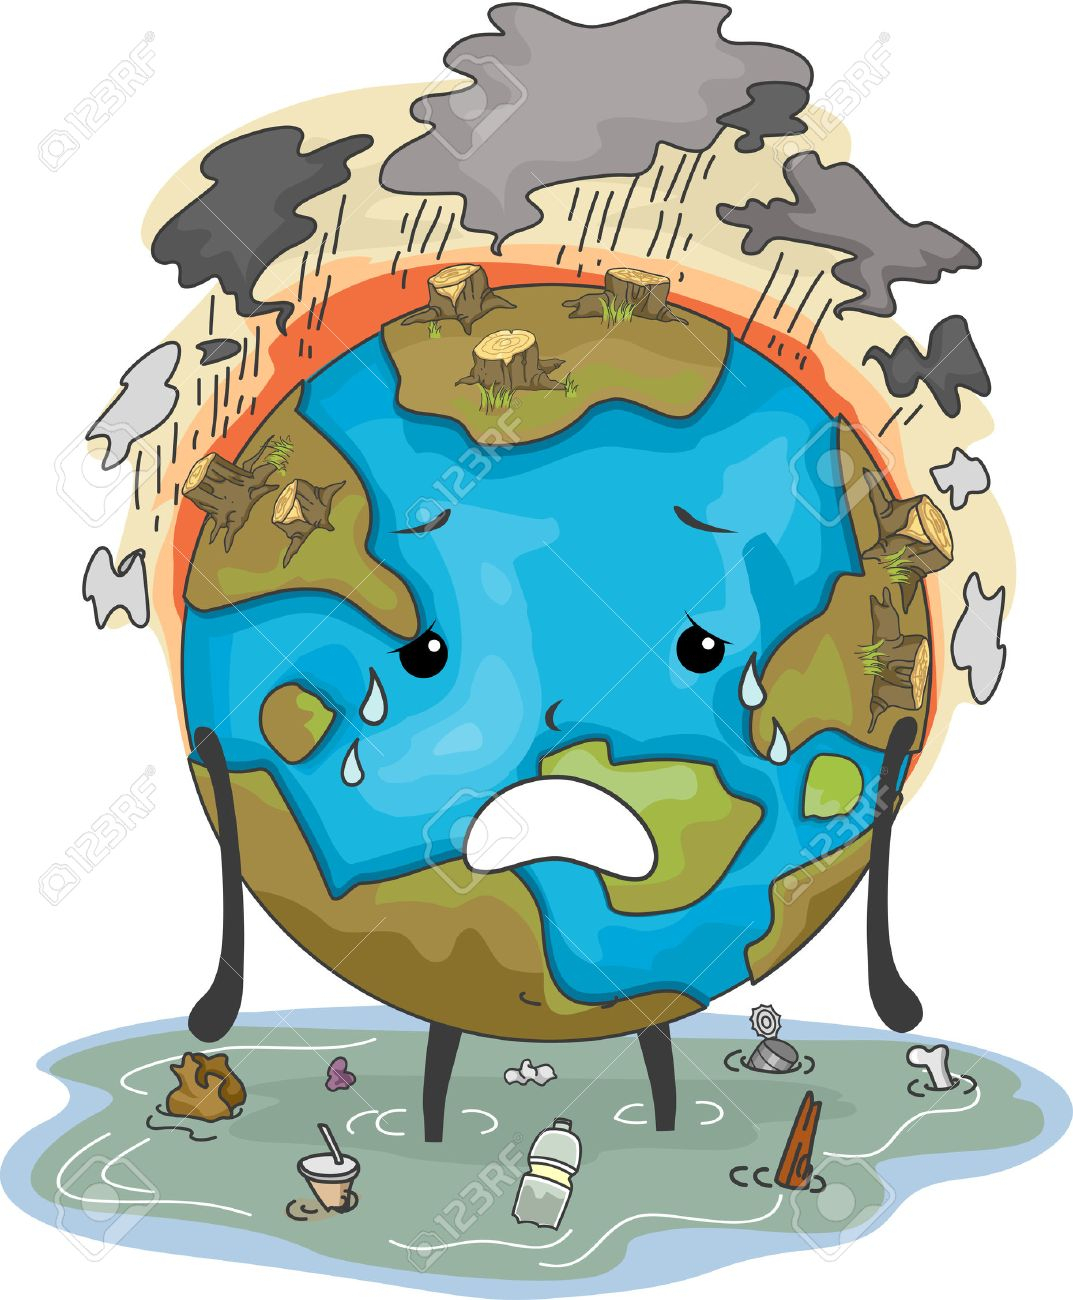 Pollution clipart. Drawing at getdrawings com